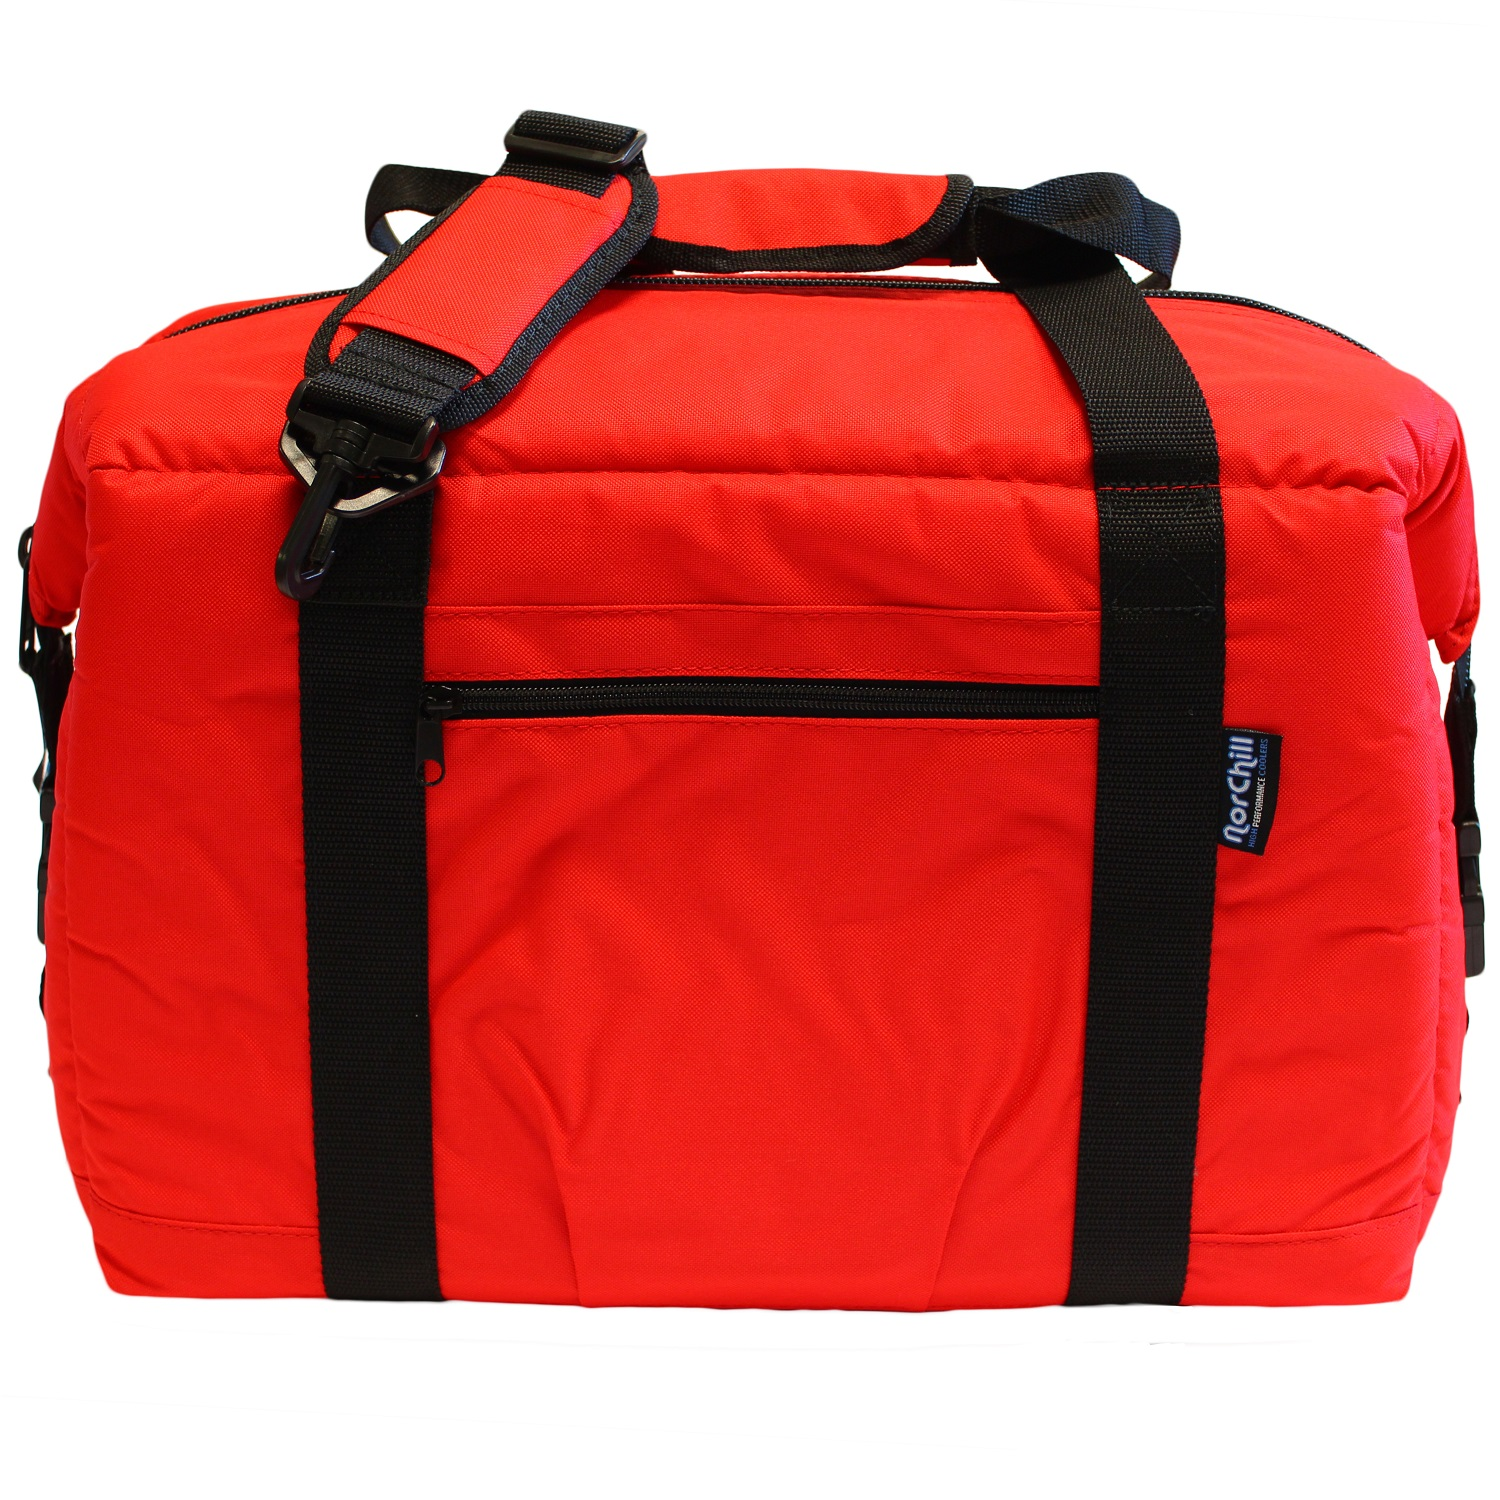 NorChill 48 Can Cooler Bag - BigChill - Red